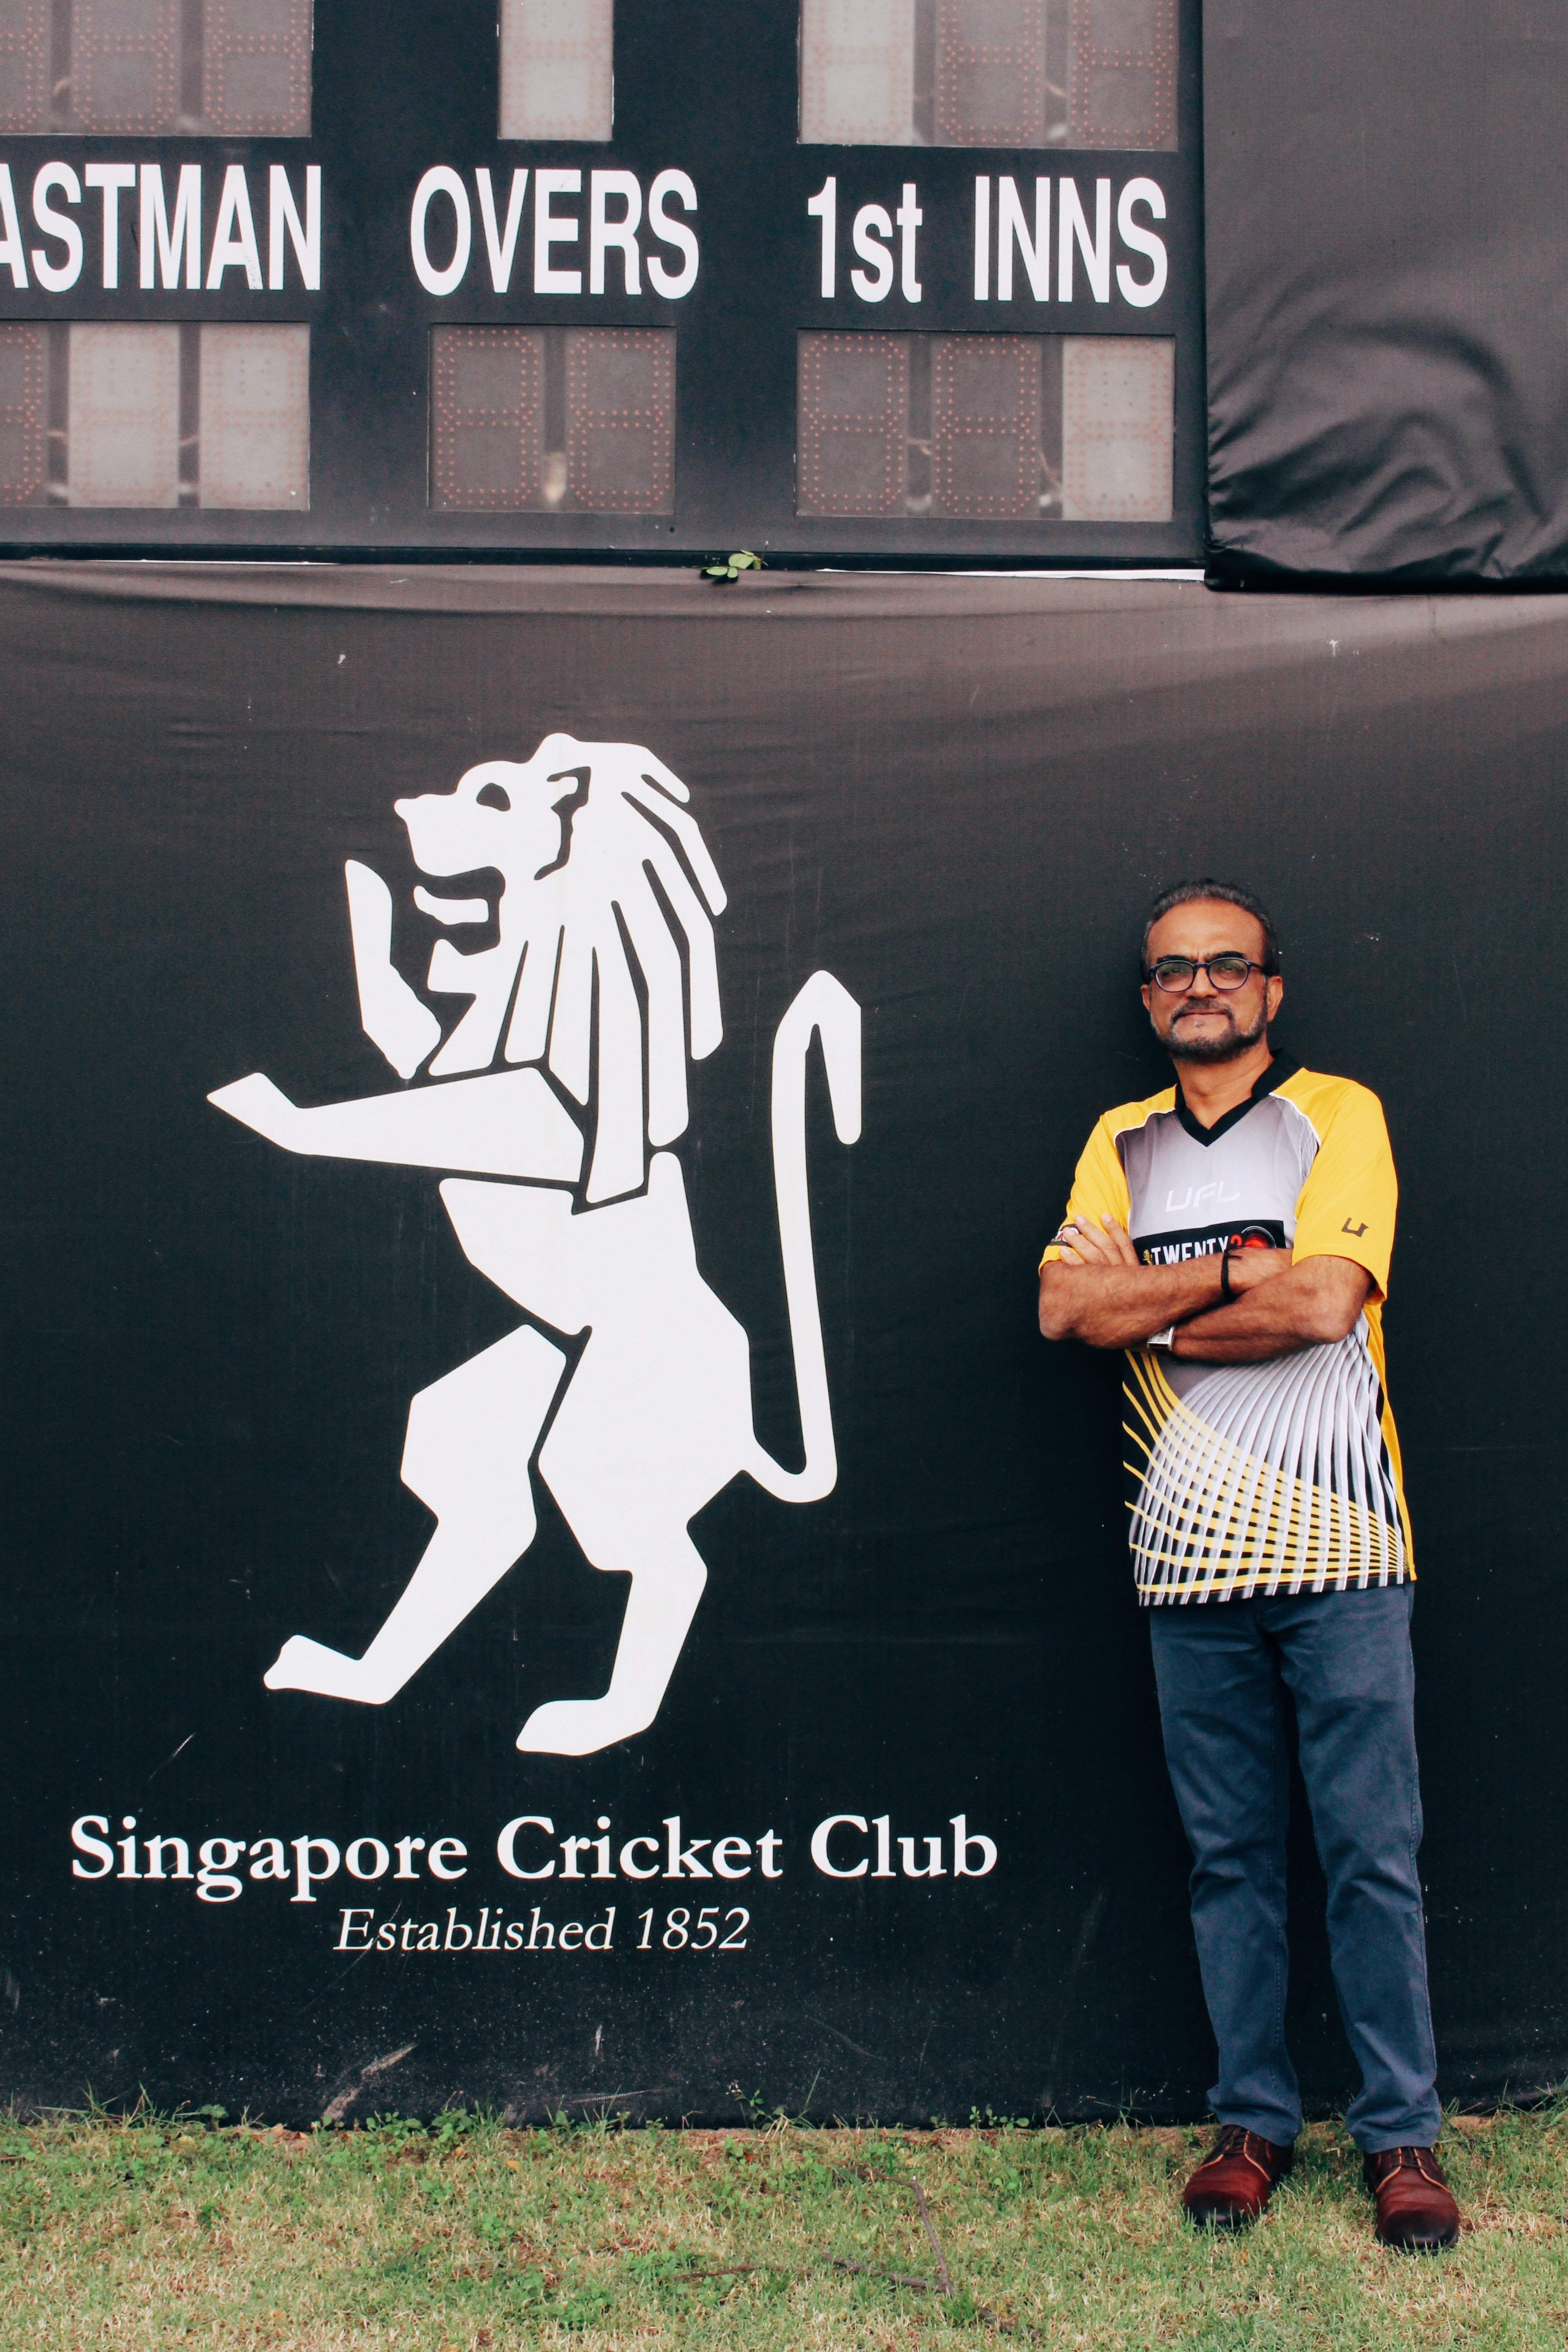 Ashok Mahtani at Singapore Cricket Club. Photo: Connected to India